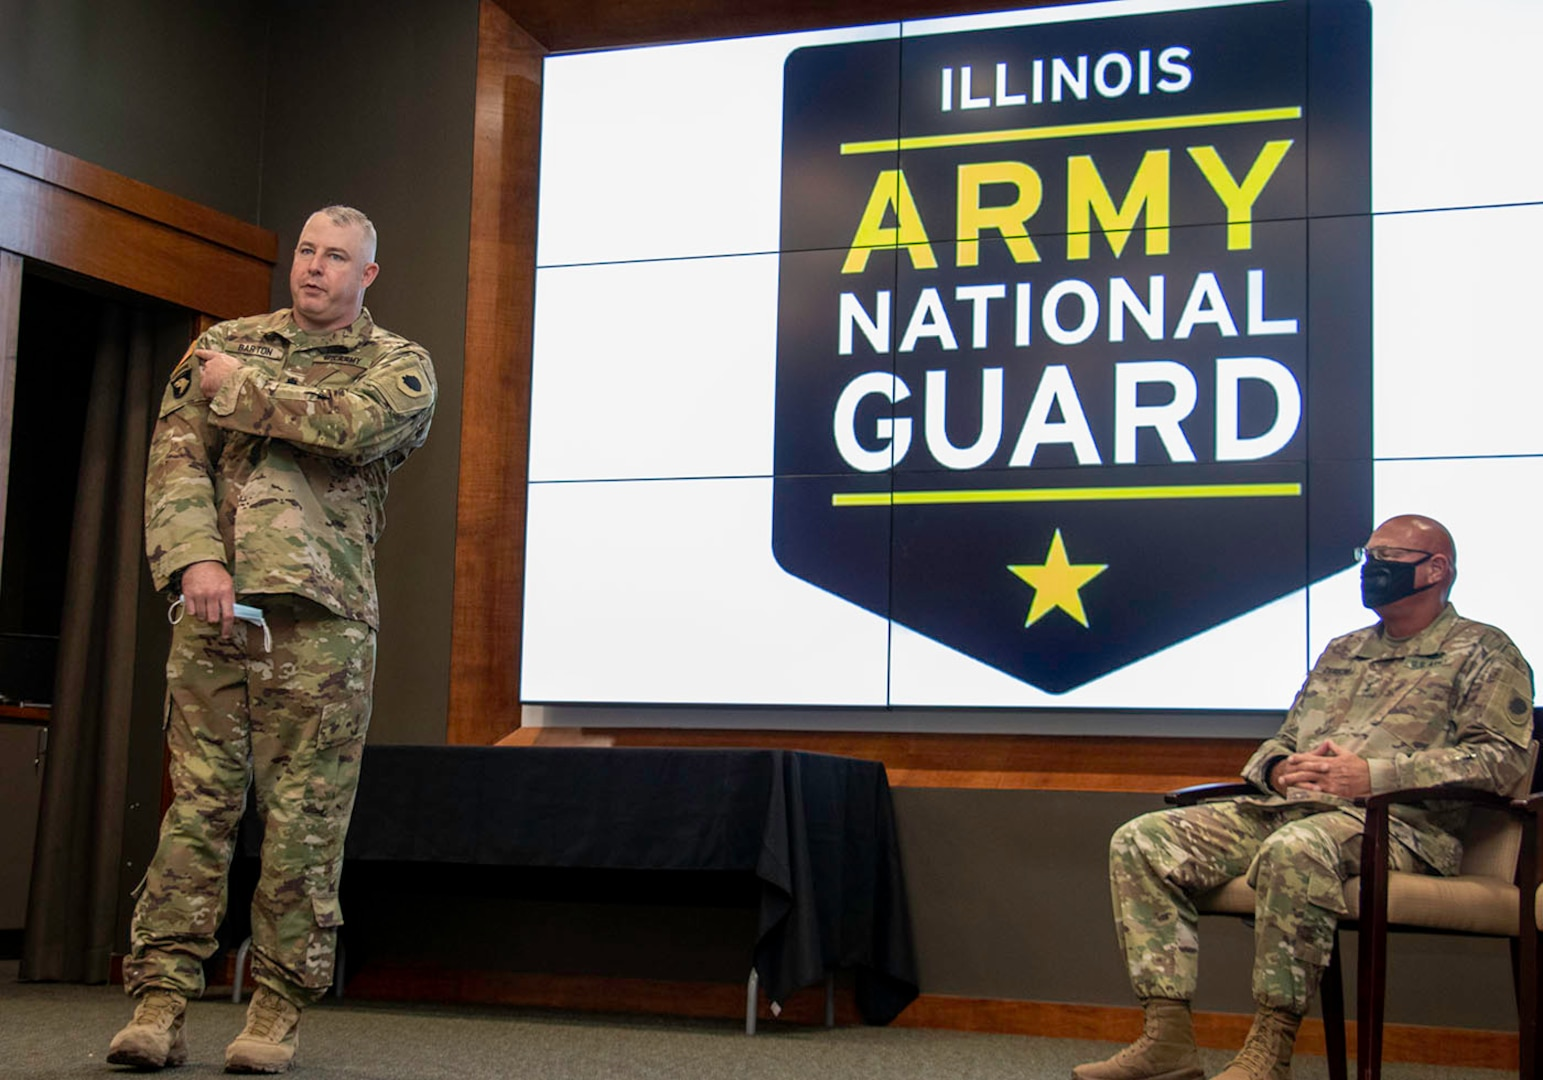 Newly promoted Lt. Col. Michael Barton, of Greenview, Illinois, points to the United States flag on his uniform to illustrate each member of the Illinois National Guard is an ambassador regardless of their reason for serving.